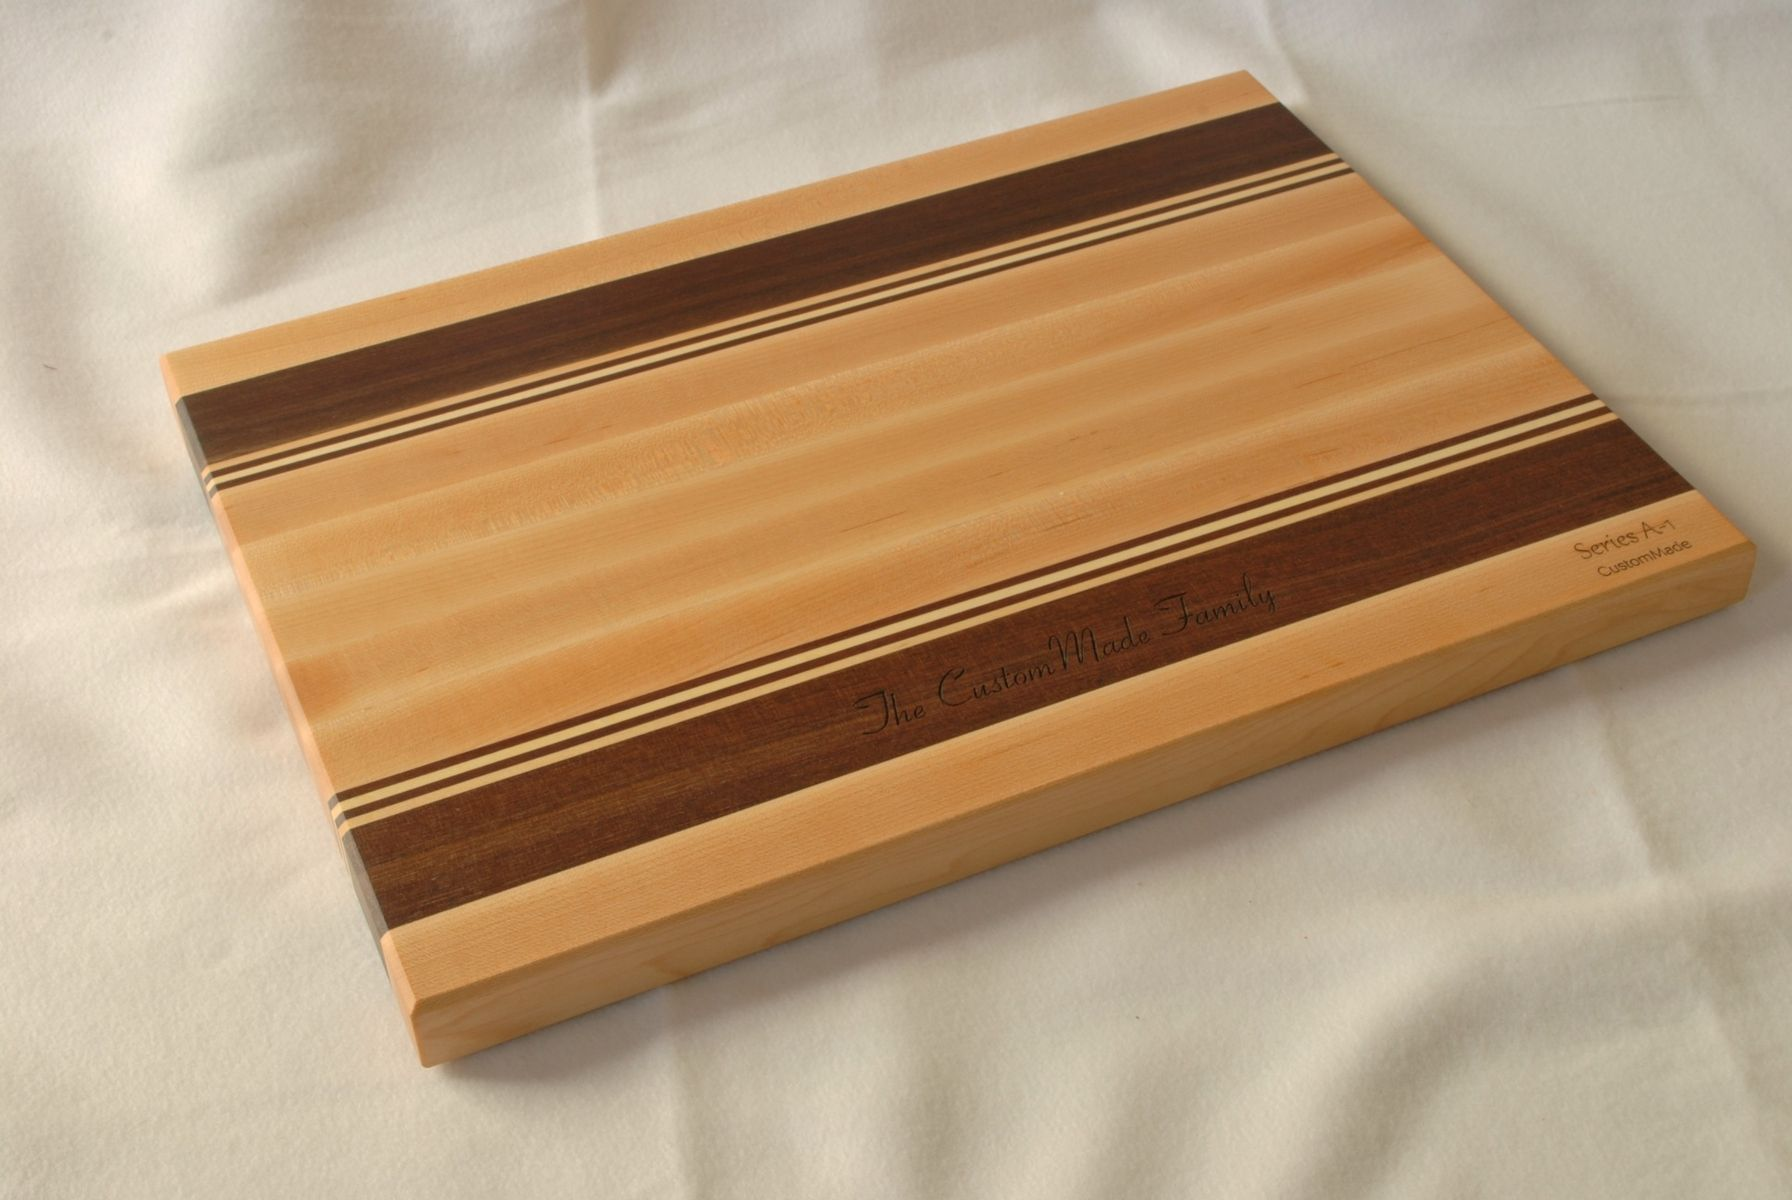 A Handmade Personalized Wood Cutting Board With Engraving Made To Order From Clark Creations Custommade